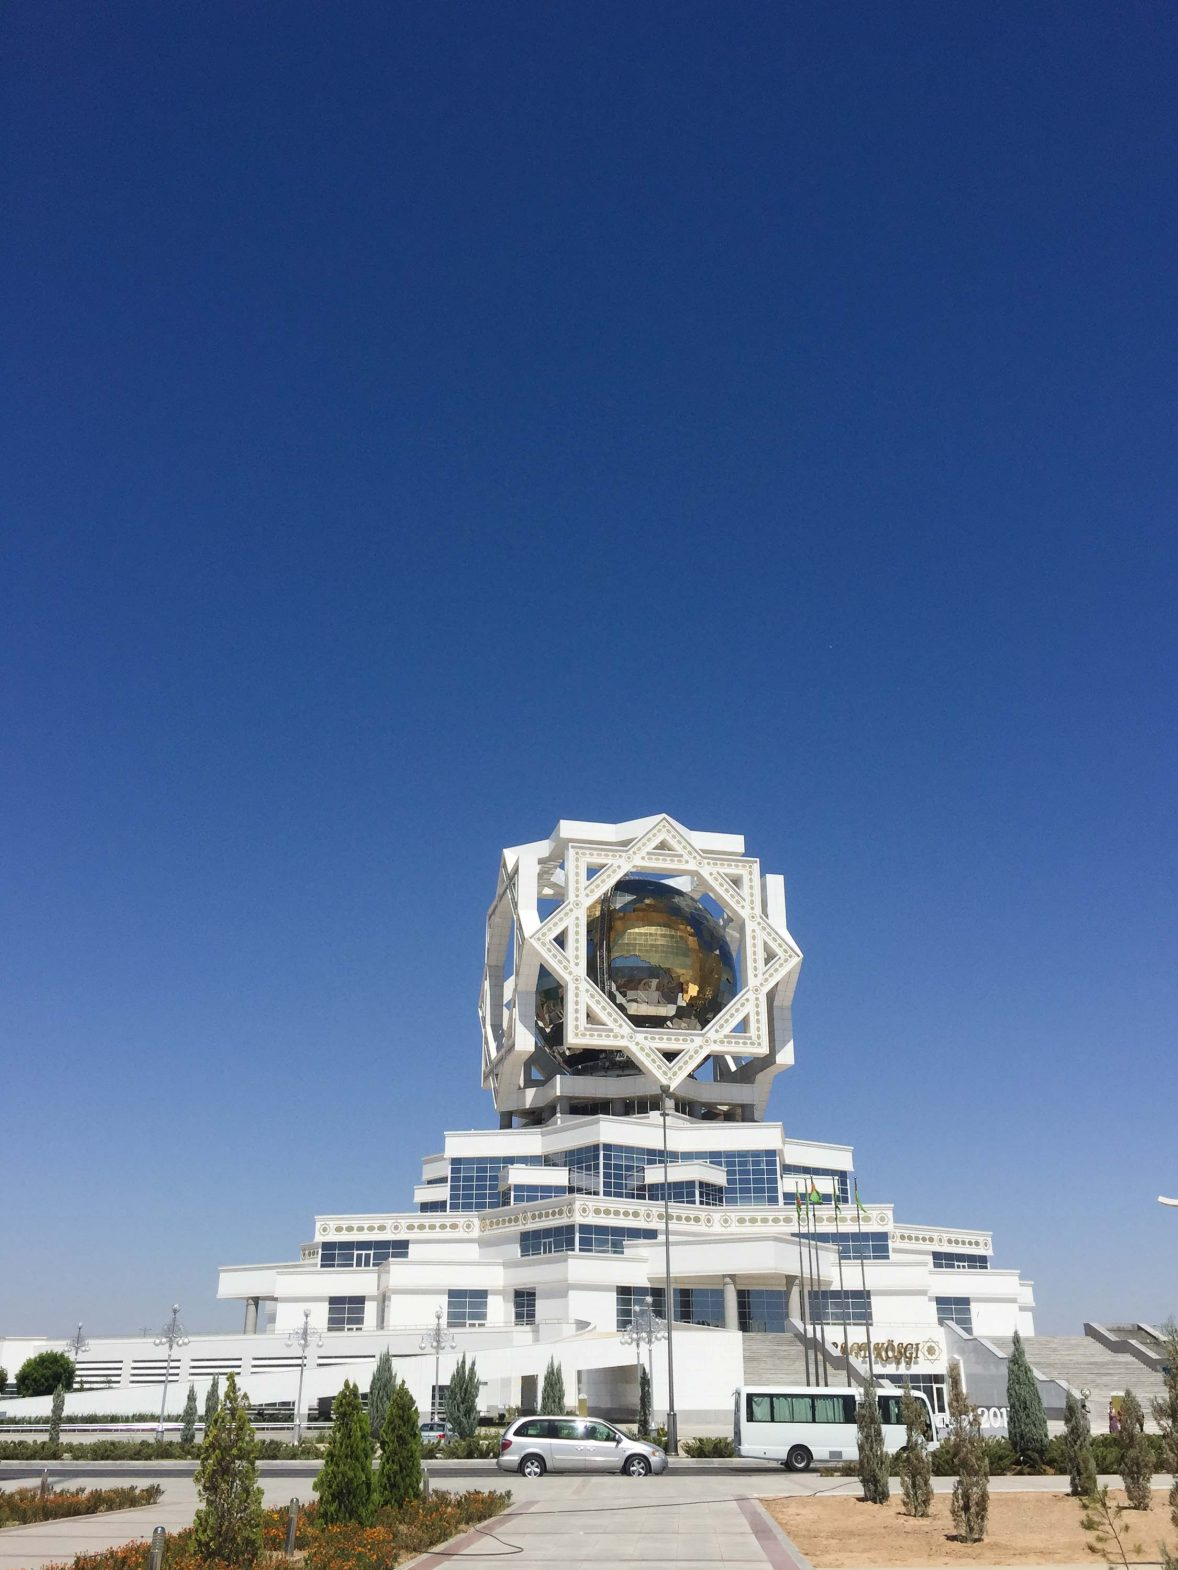 Palace of Happiness, Ashgabat, Turkmenistan.